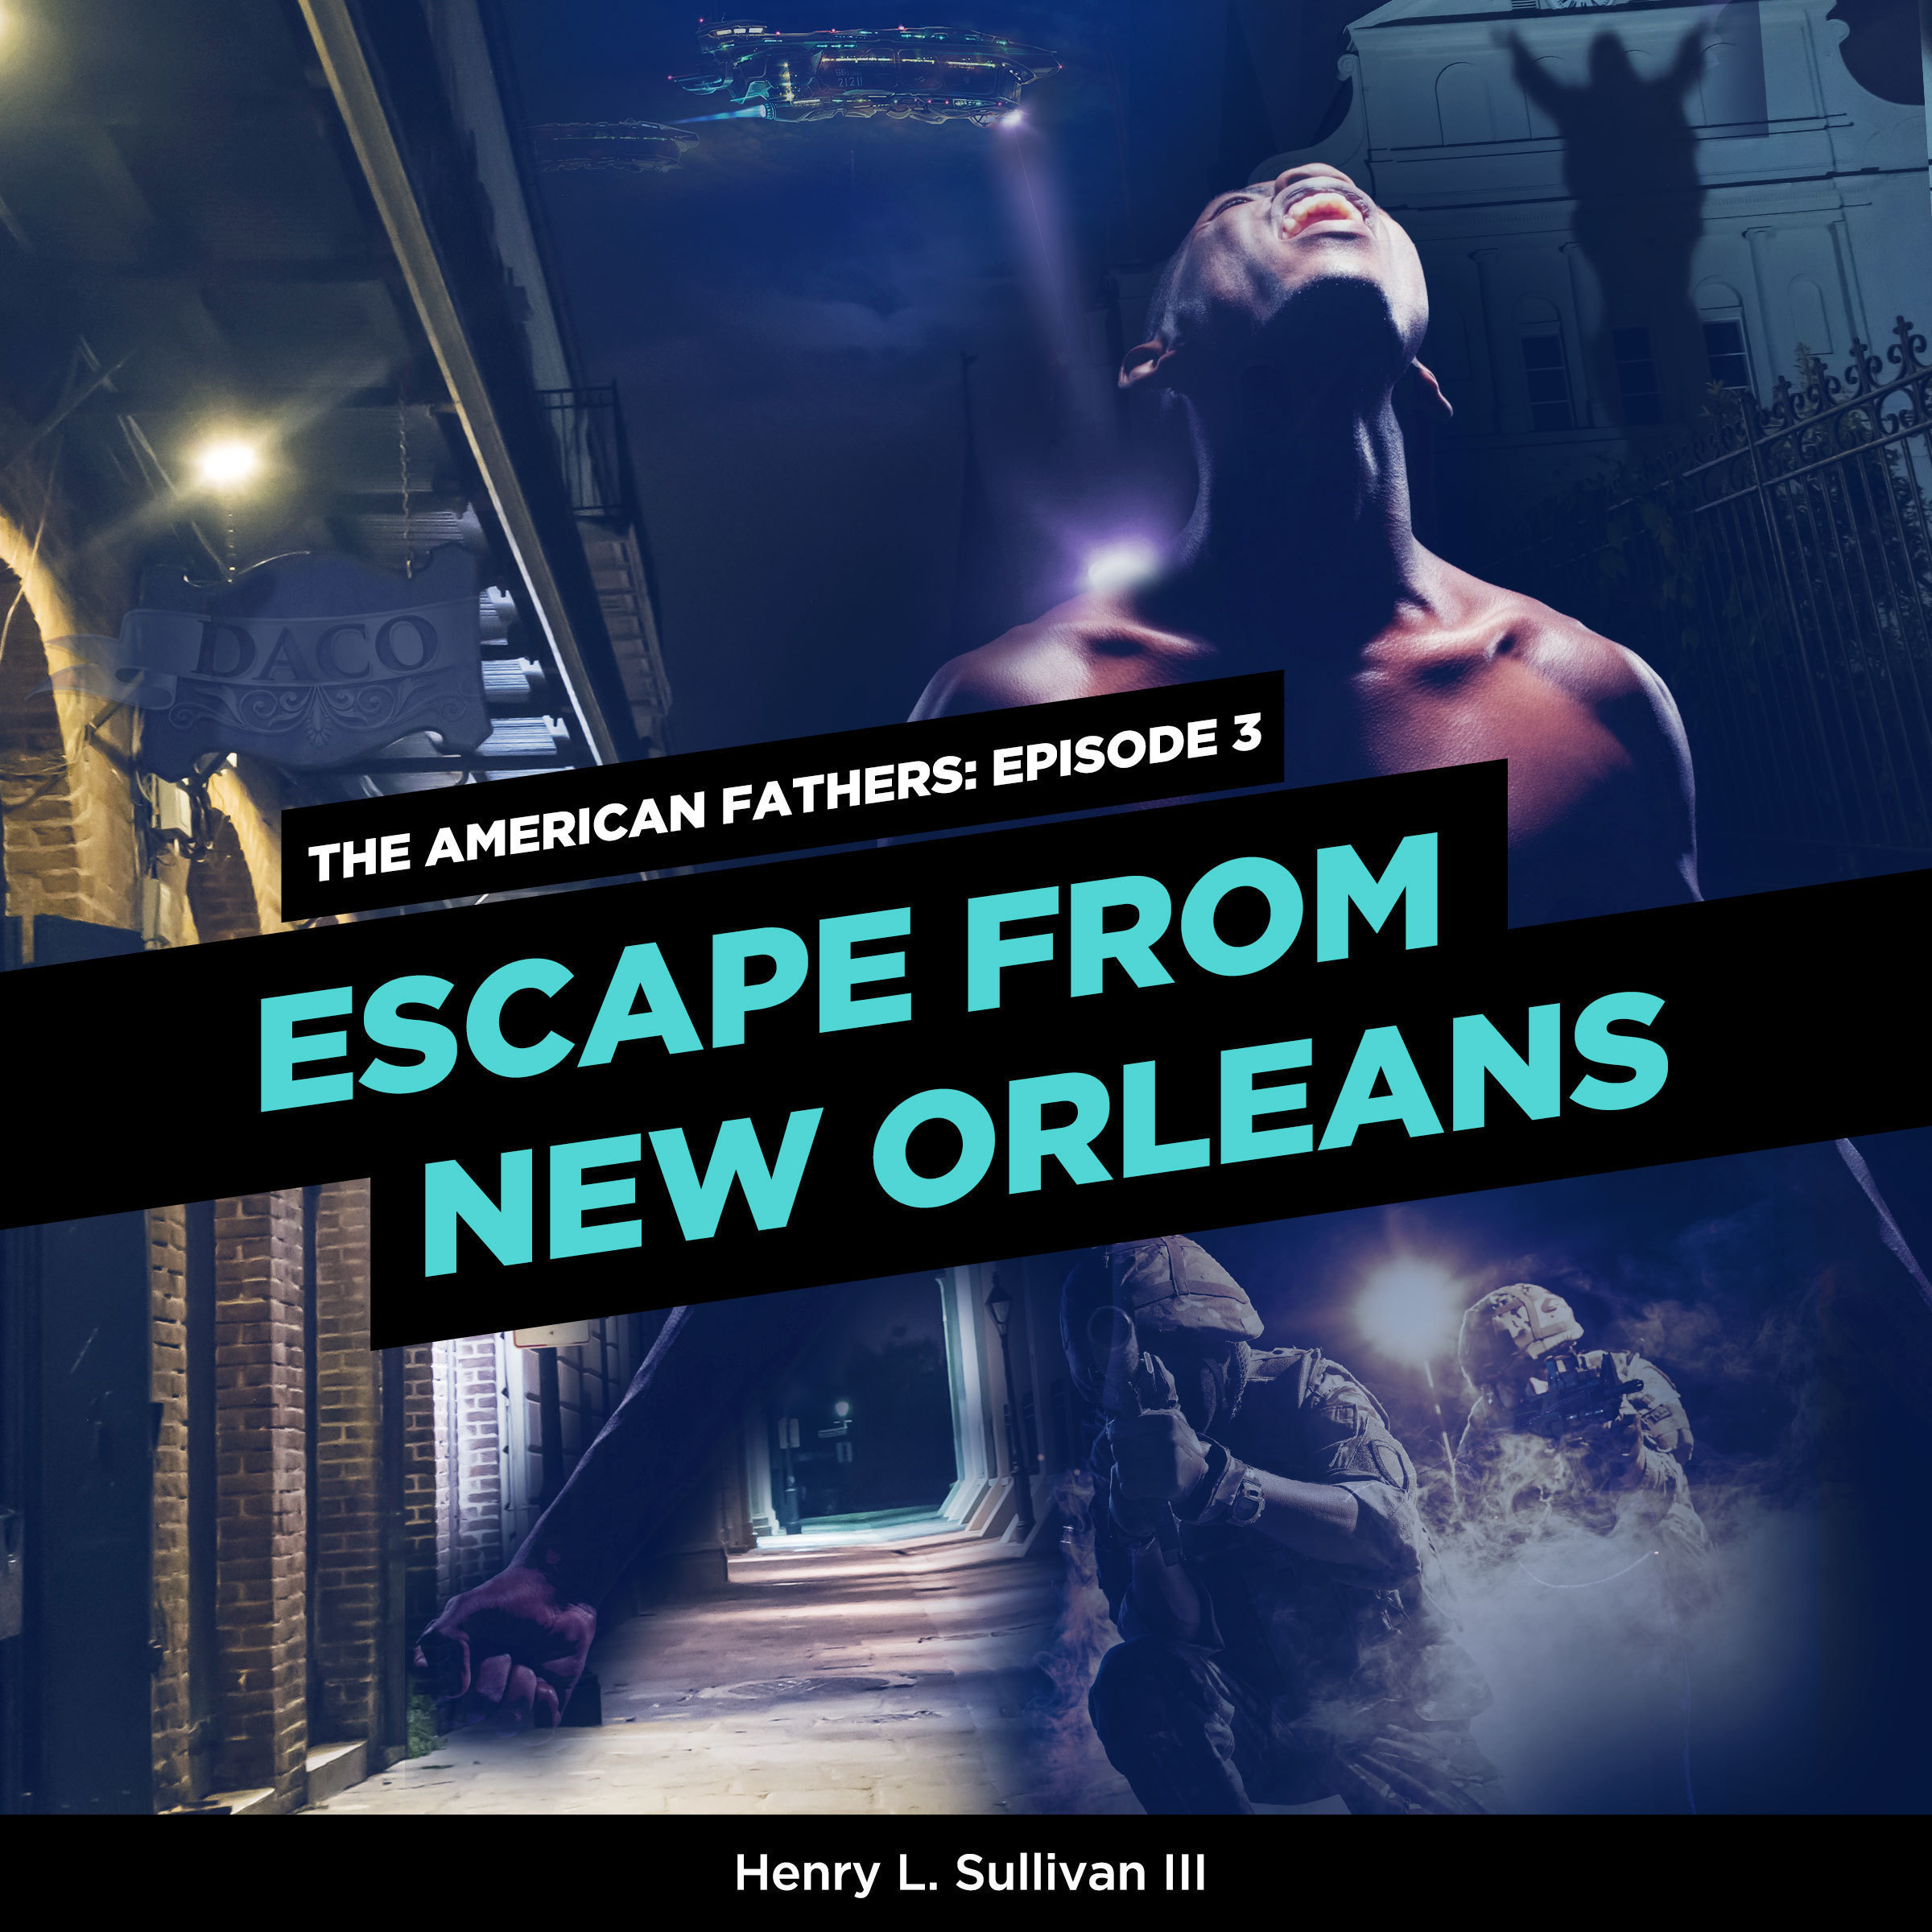 Printable THE AMERICAN FATHERS EPISODE 3: ESCAPE FROM NEW ORLEANS Audiobook Cover Art